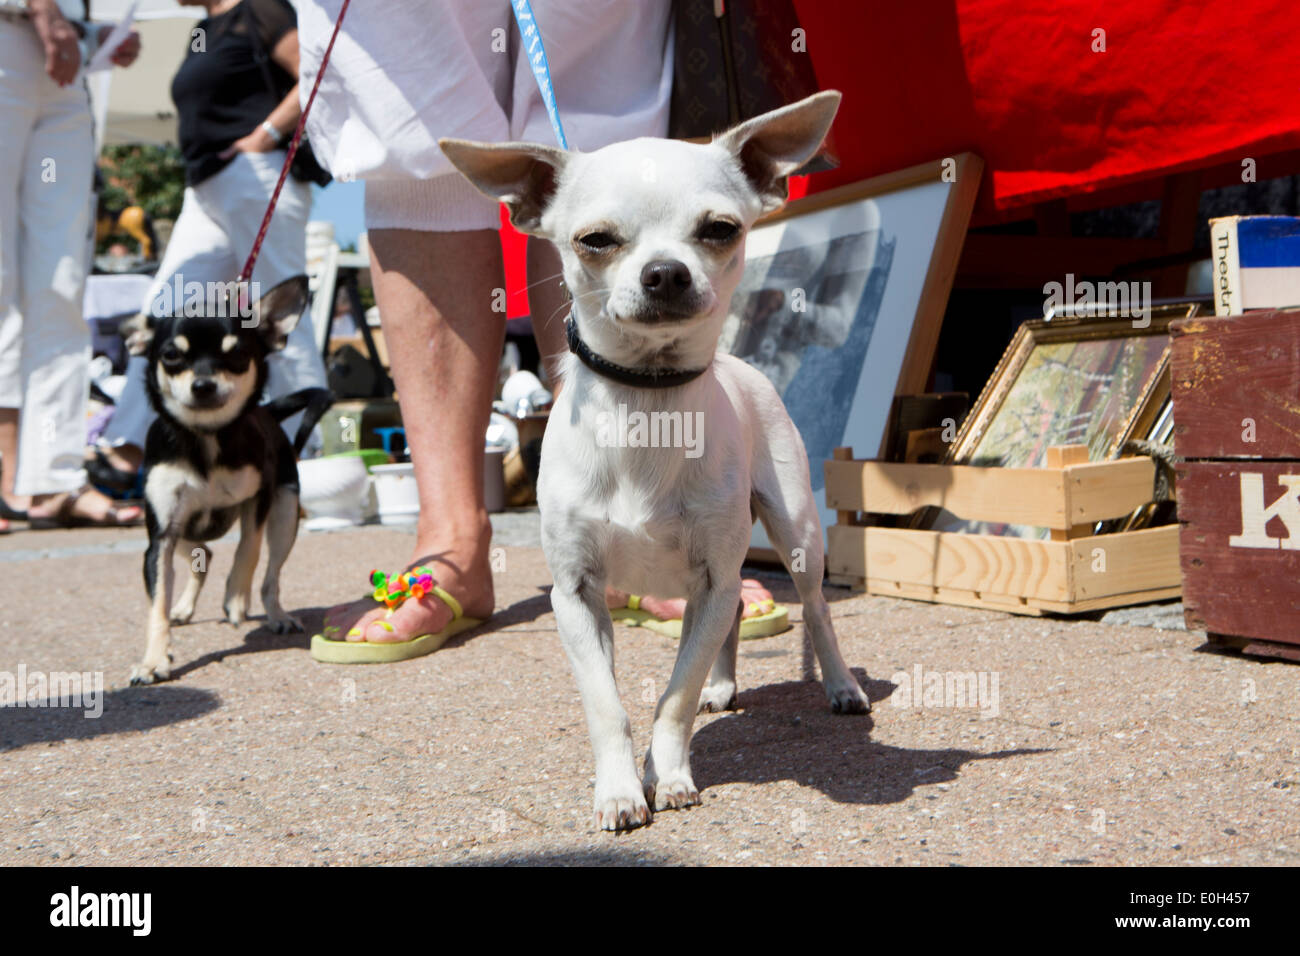 Two small dogs - Stock Image